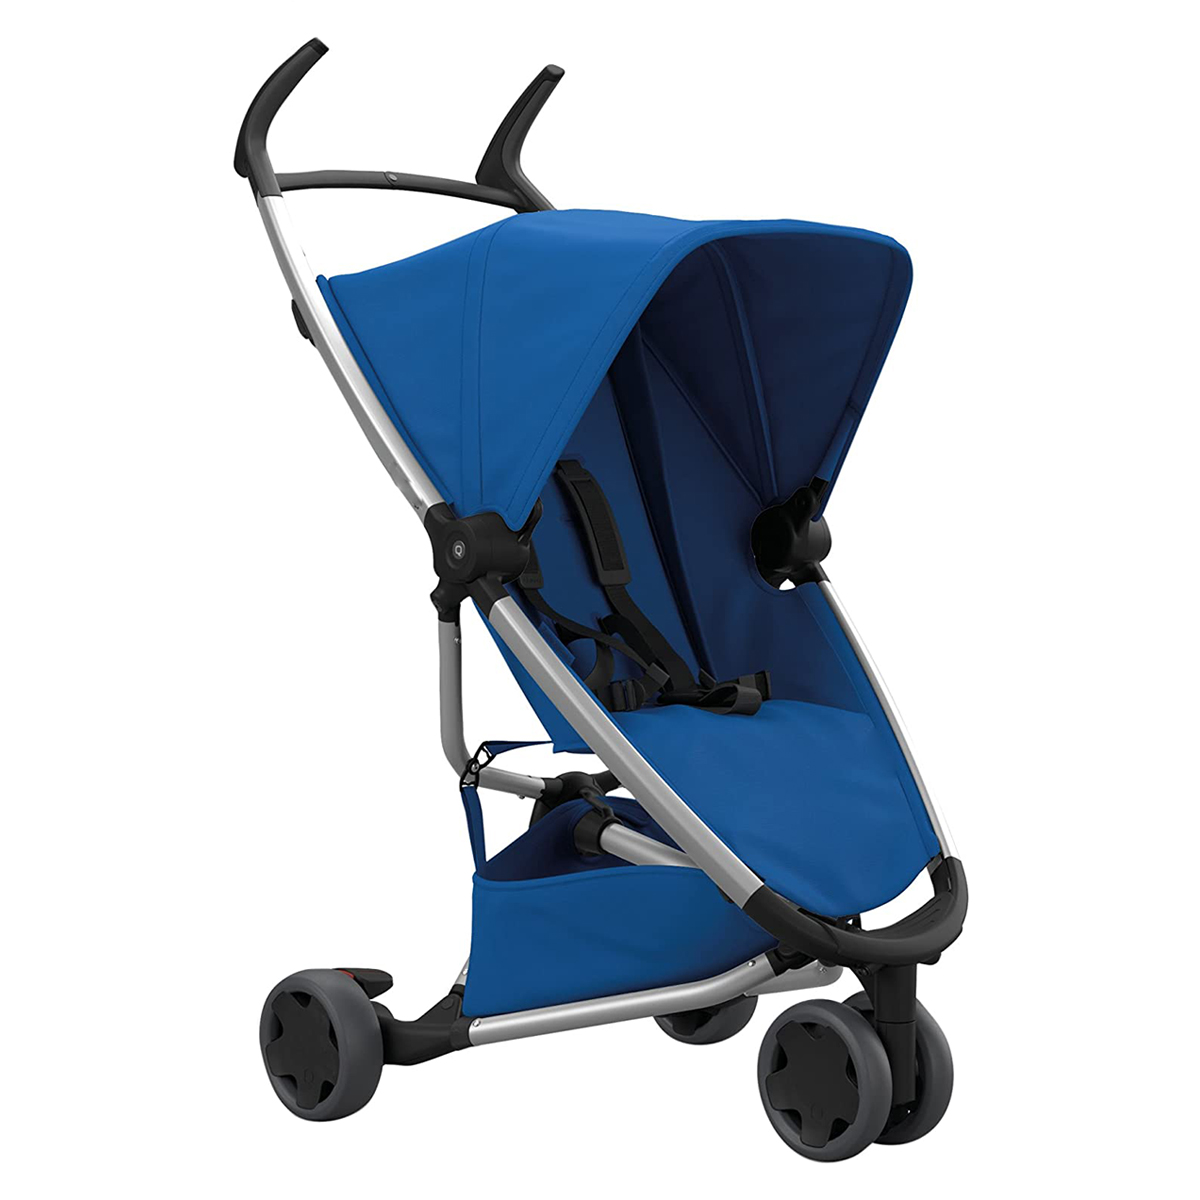 High Quality Baby Stroller Can Be Used For Sitting, Lying, Children's Trolley, Umbrella Cart, 0-4 Years Old